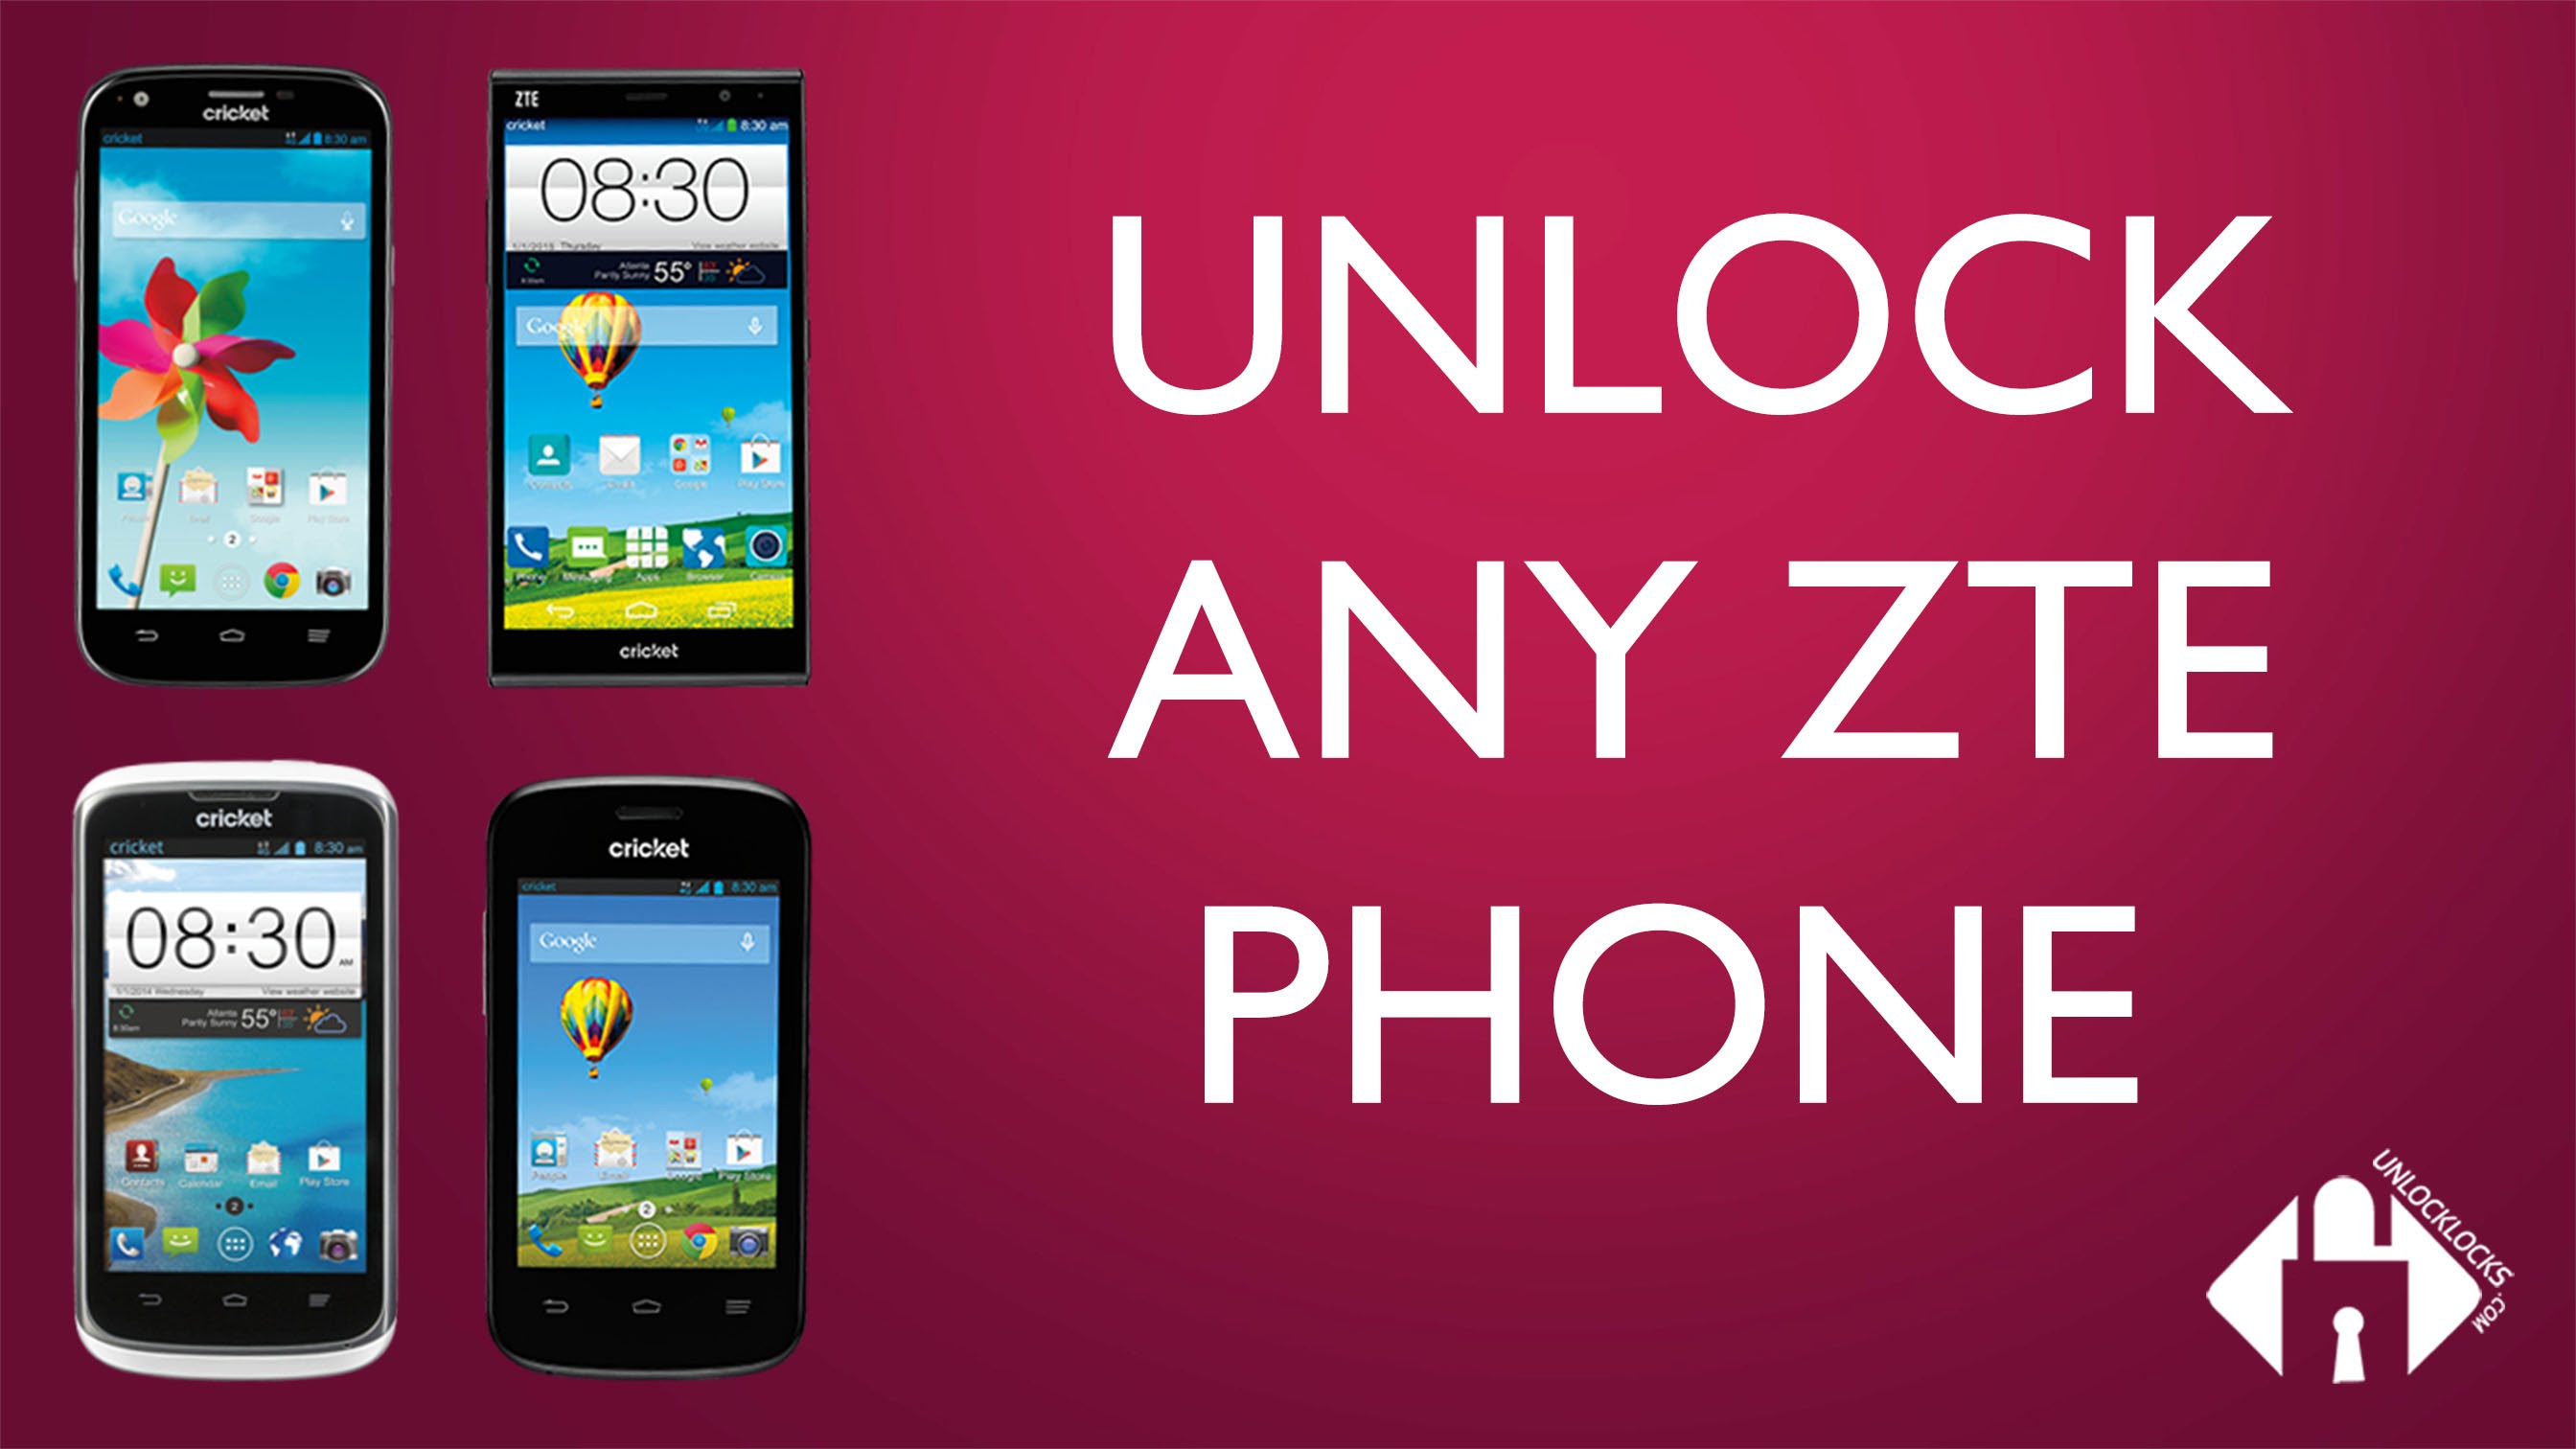 How To Unlock Cricket Wireless Zte Fanfare By Unlock Code